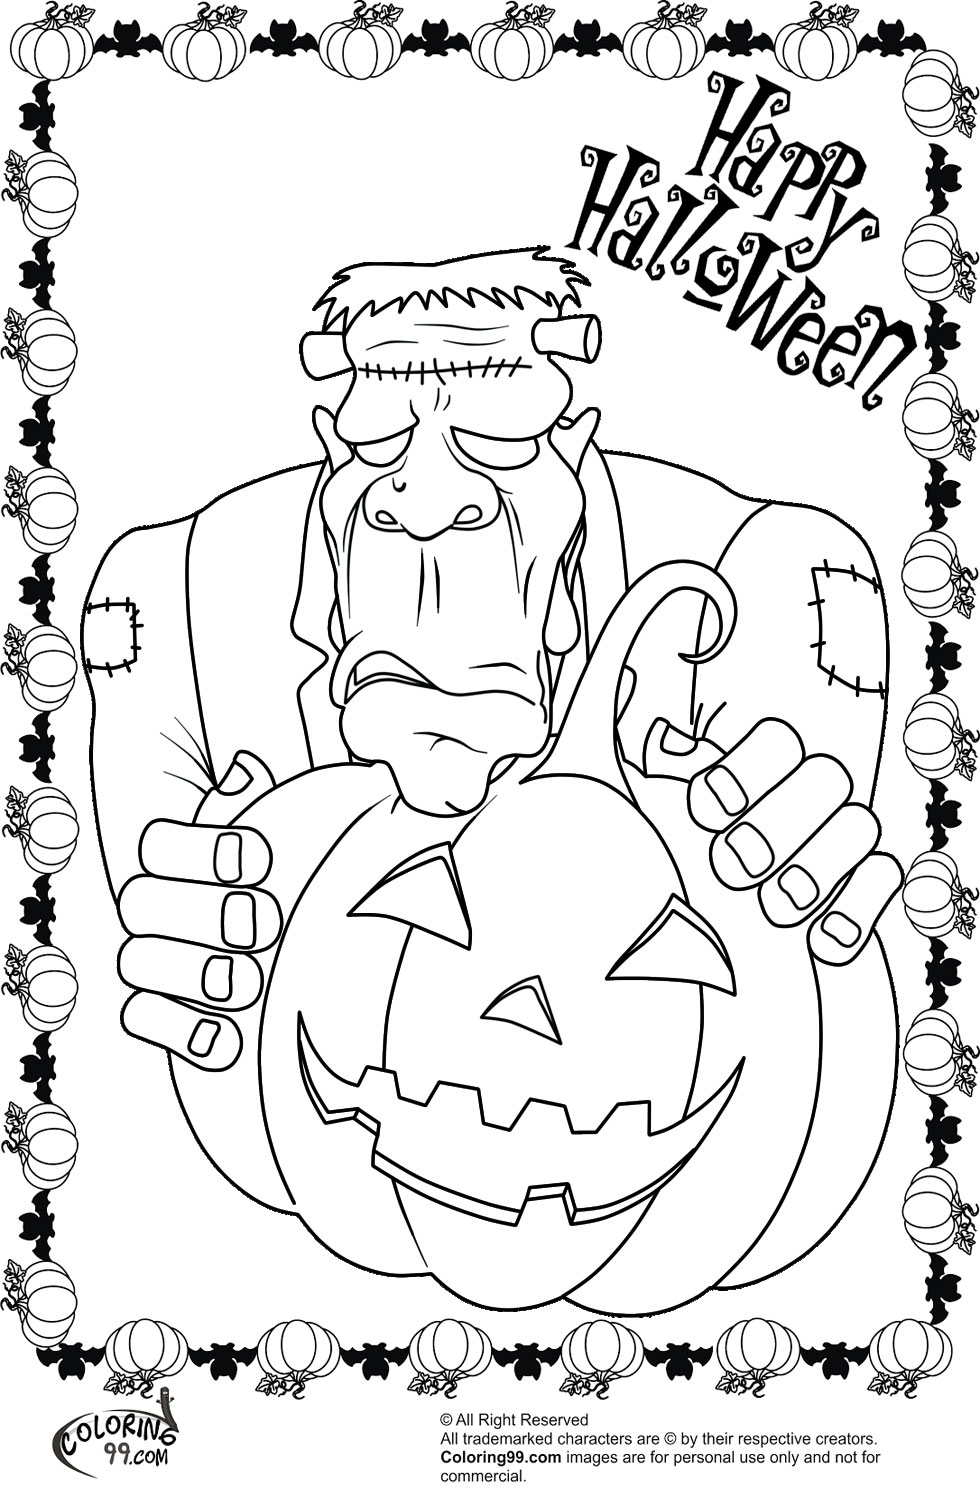 Frankenstein Halloween Coloring Pages | Team colors